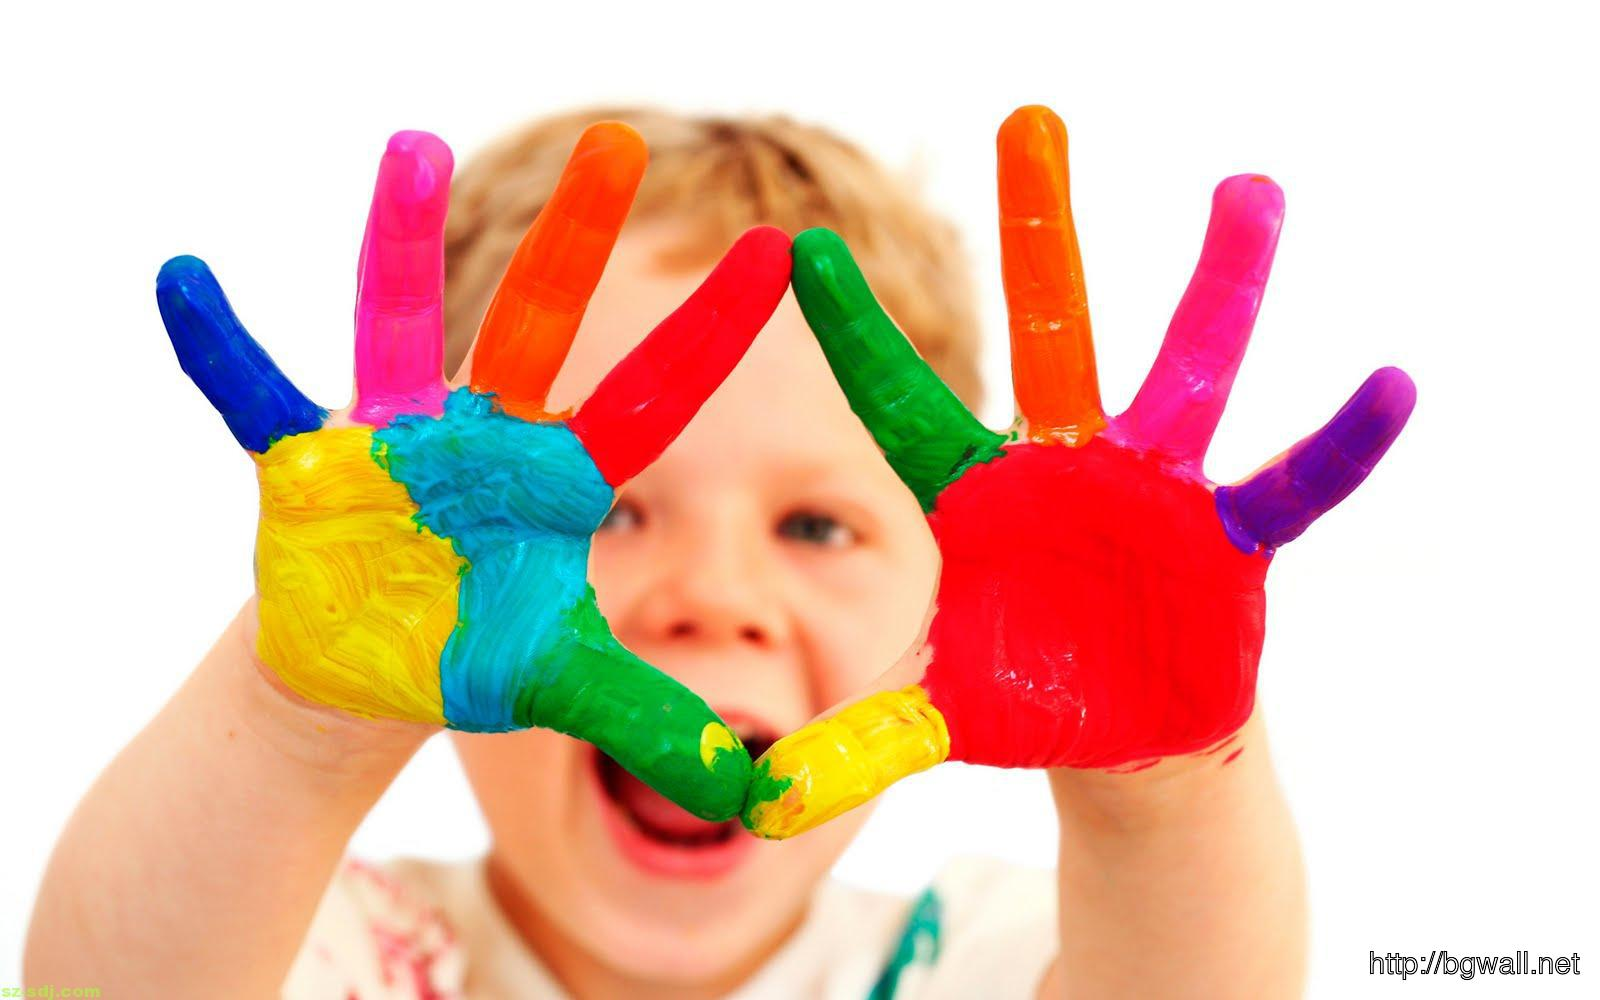 a-child-with-colorfull-hand-wallpaper-background